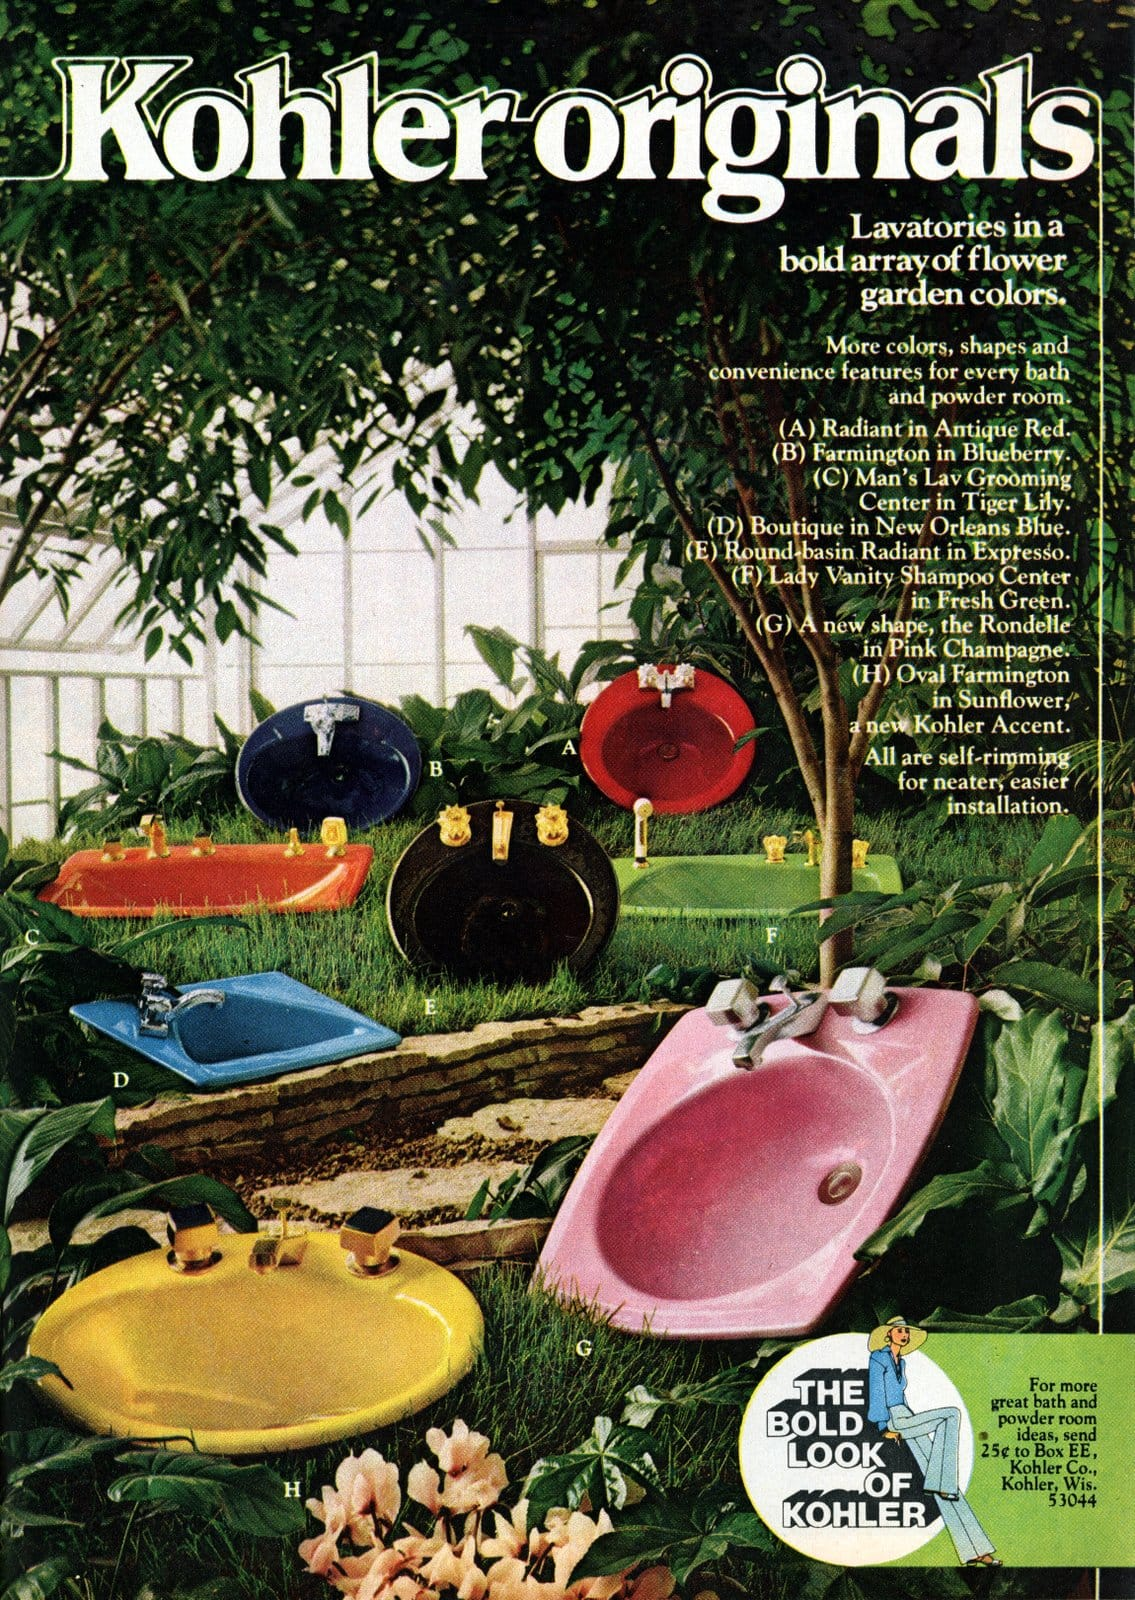 Kohler Originals Lavatories in a bold array of flower garden colors (1967)